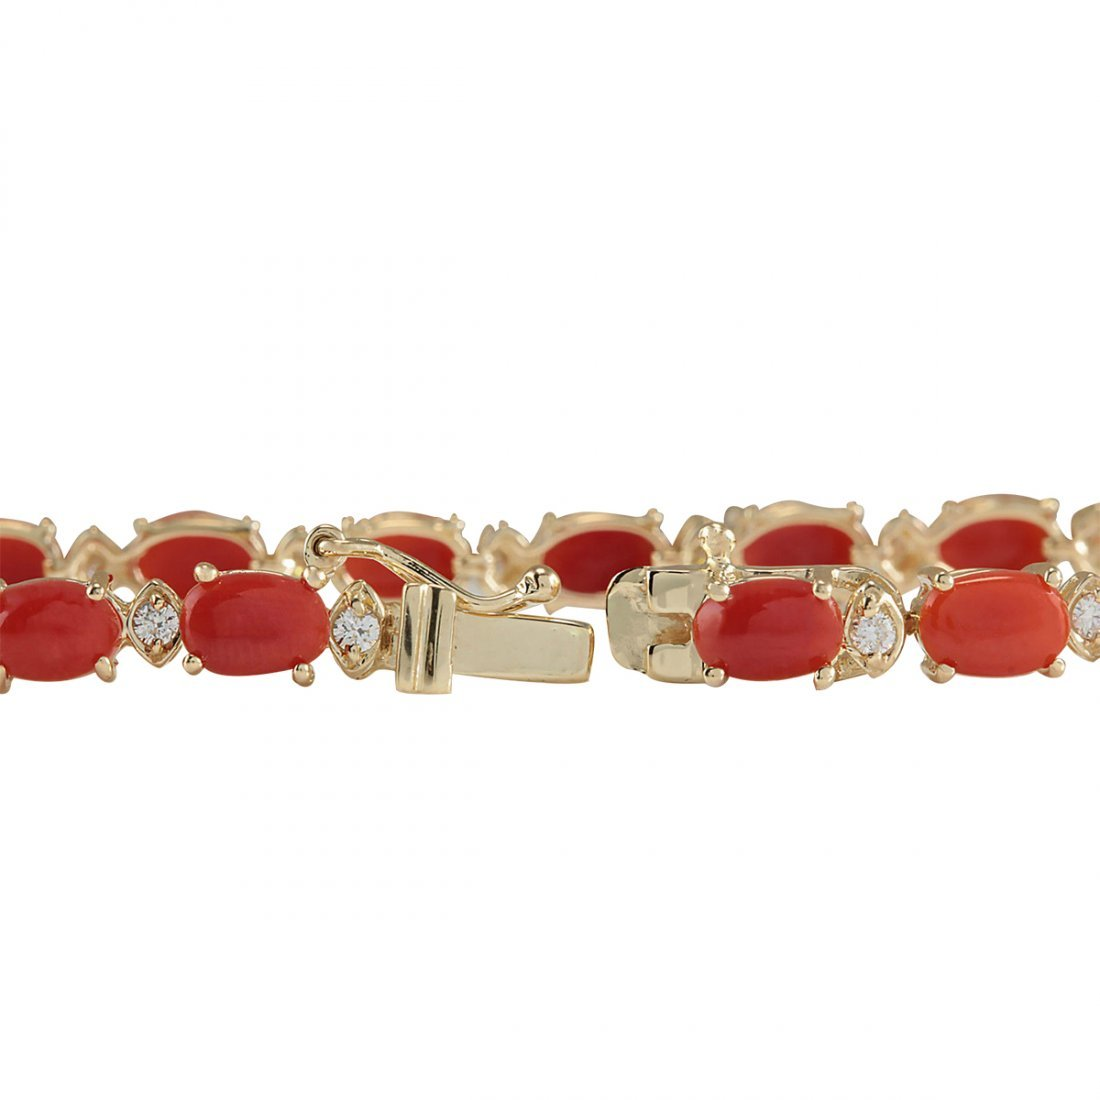 8.77CTW Natural Red Coral And Diamond Bracelet In 14K - 2